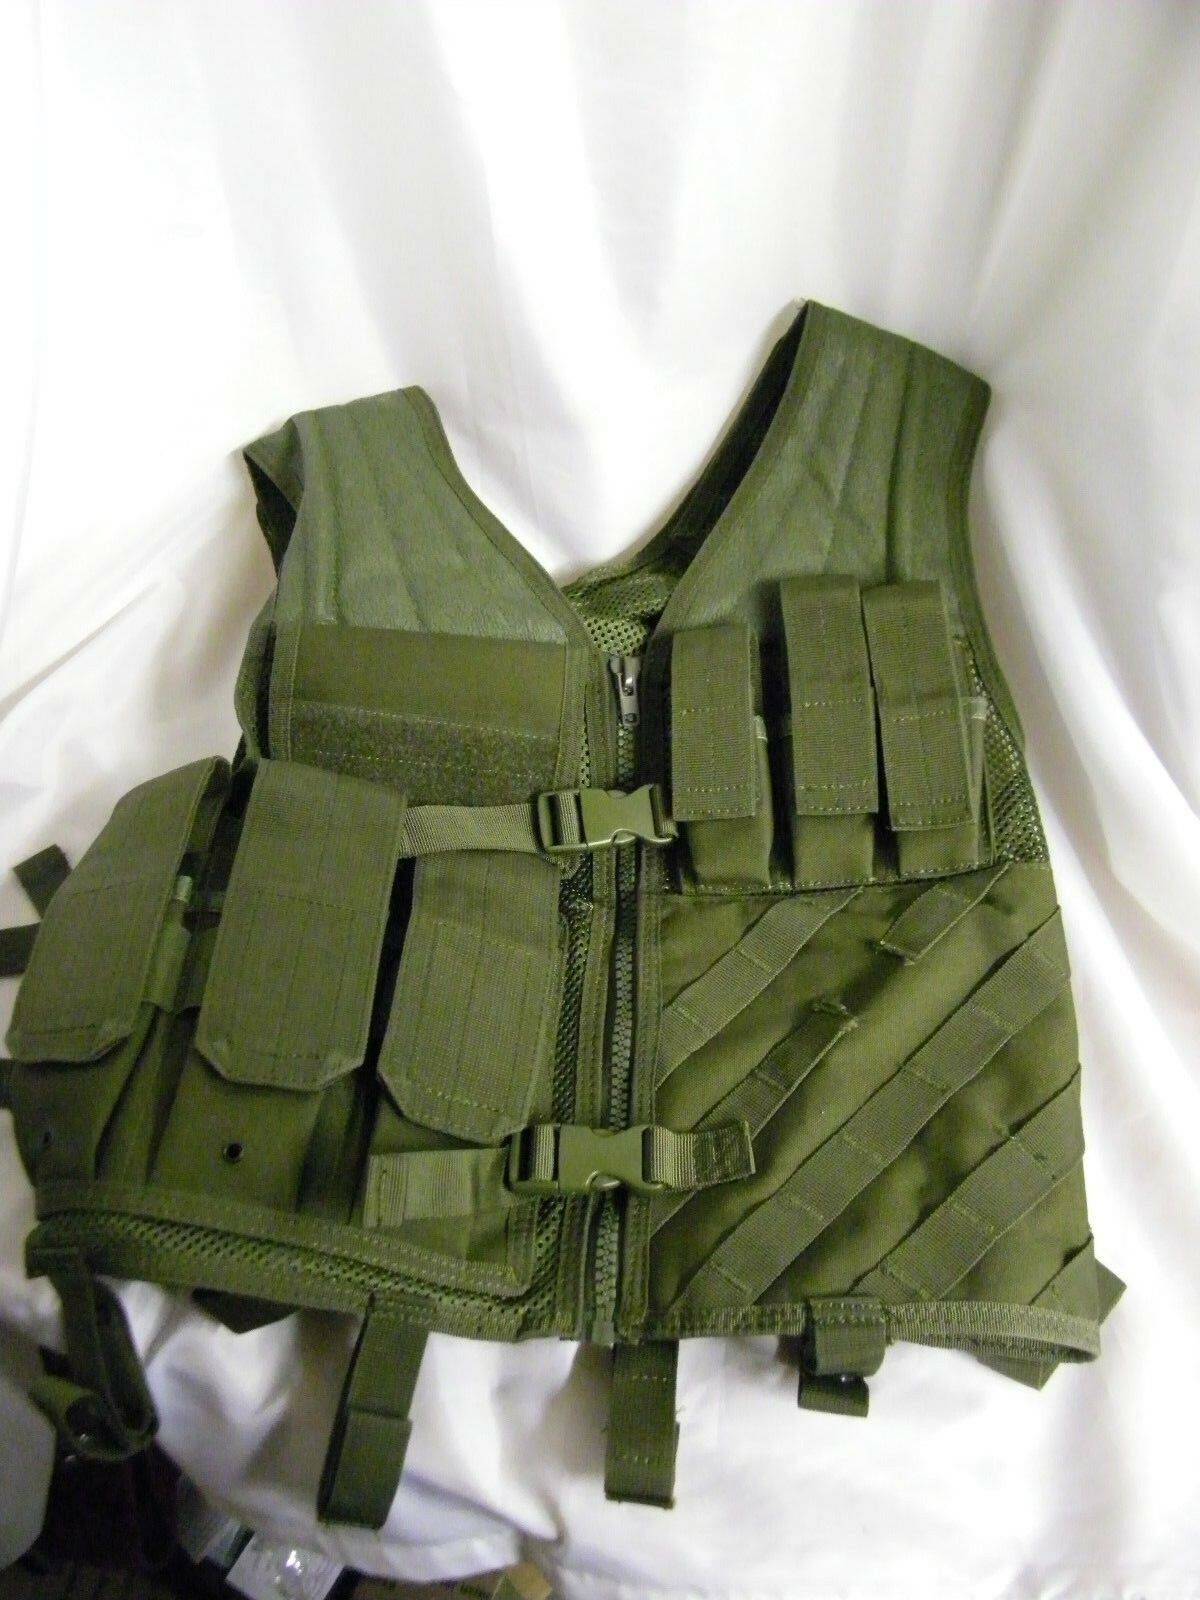 USA Tactical Vest with Pouches, Adjustable size fit M-XL Size.